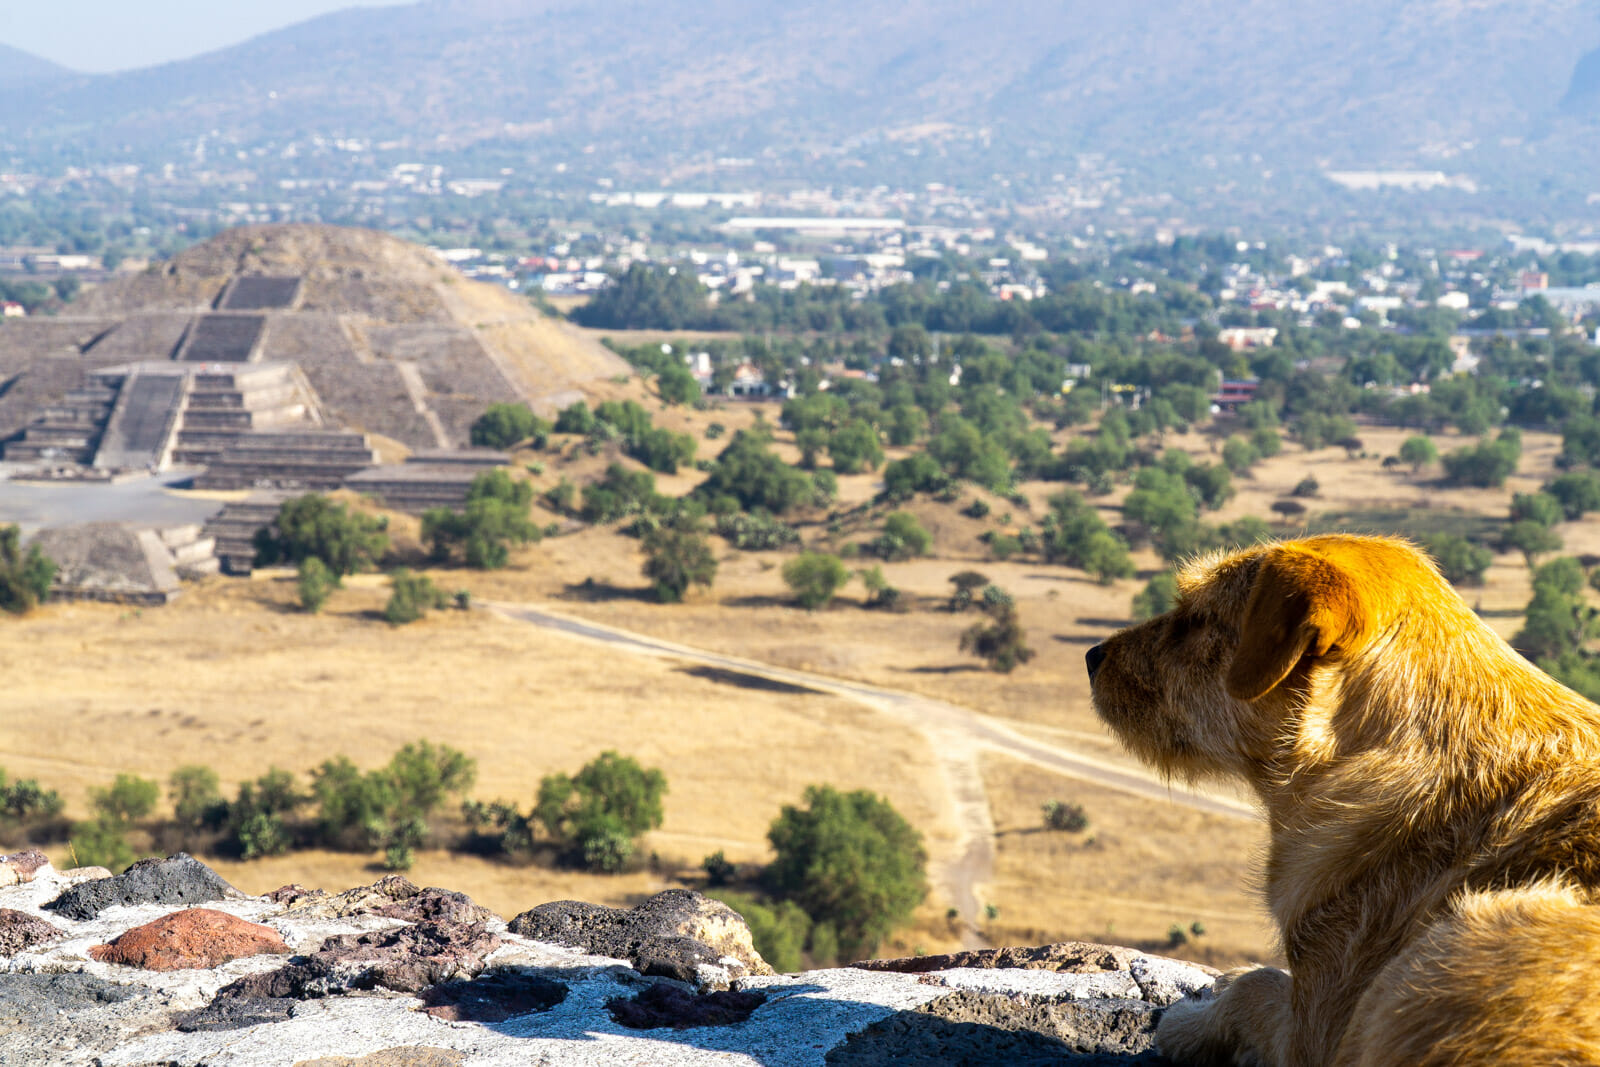 Dog of Wonders at the Teotihuacan Pyramids